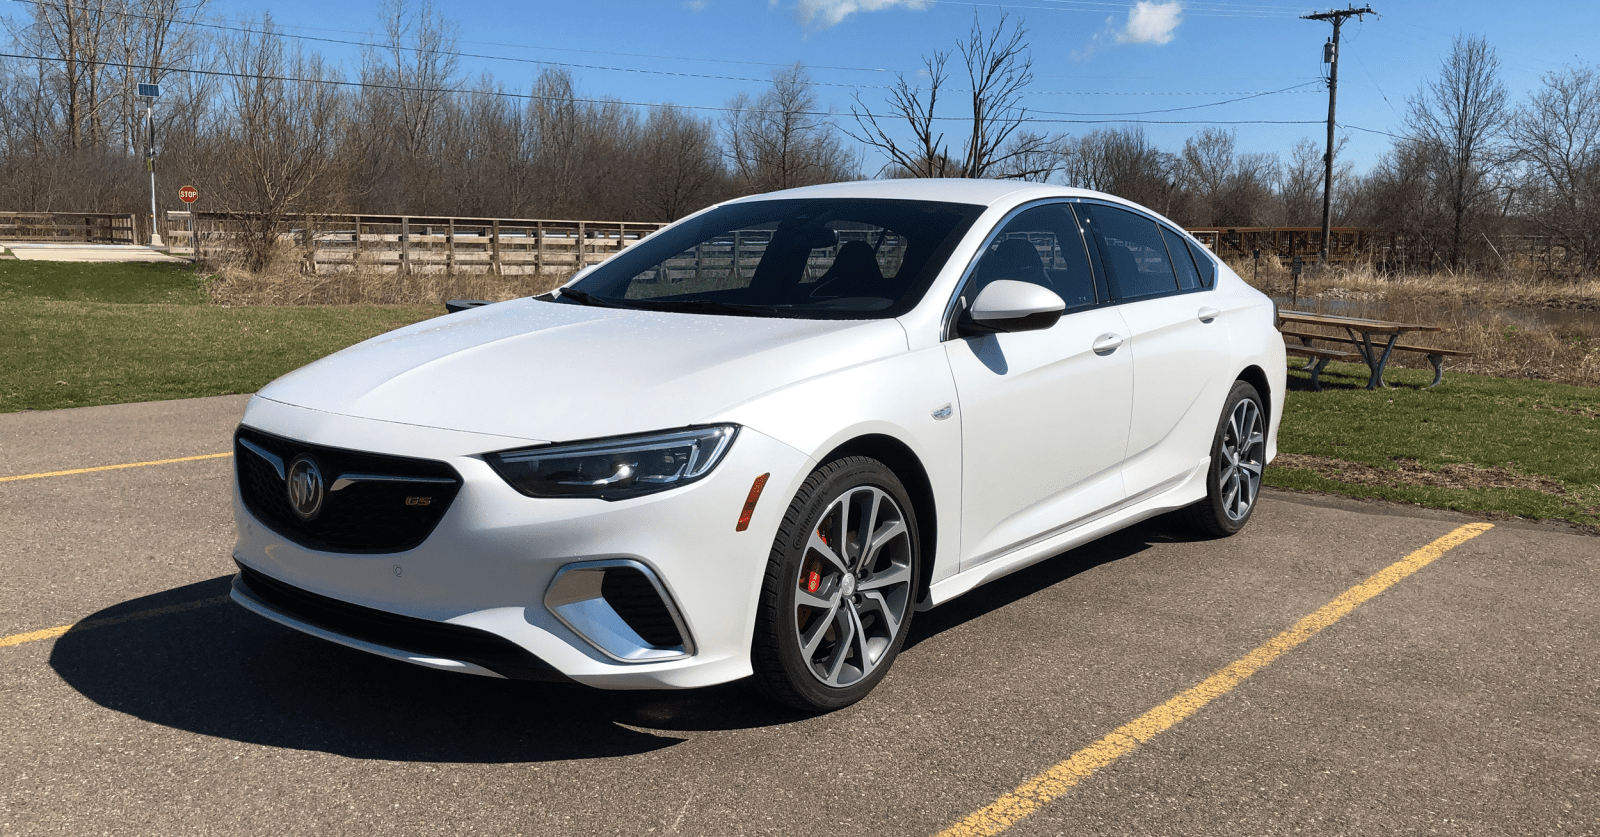 Buick Takes Over the Middle Ground with the Regal Models